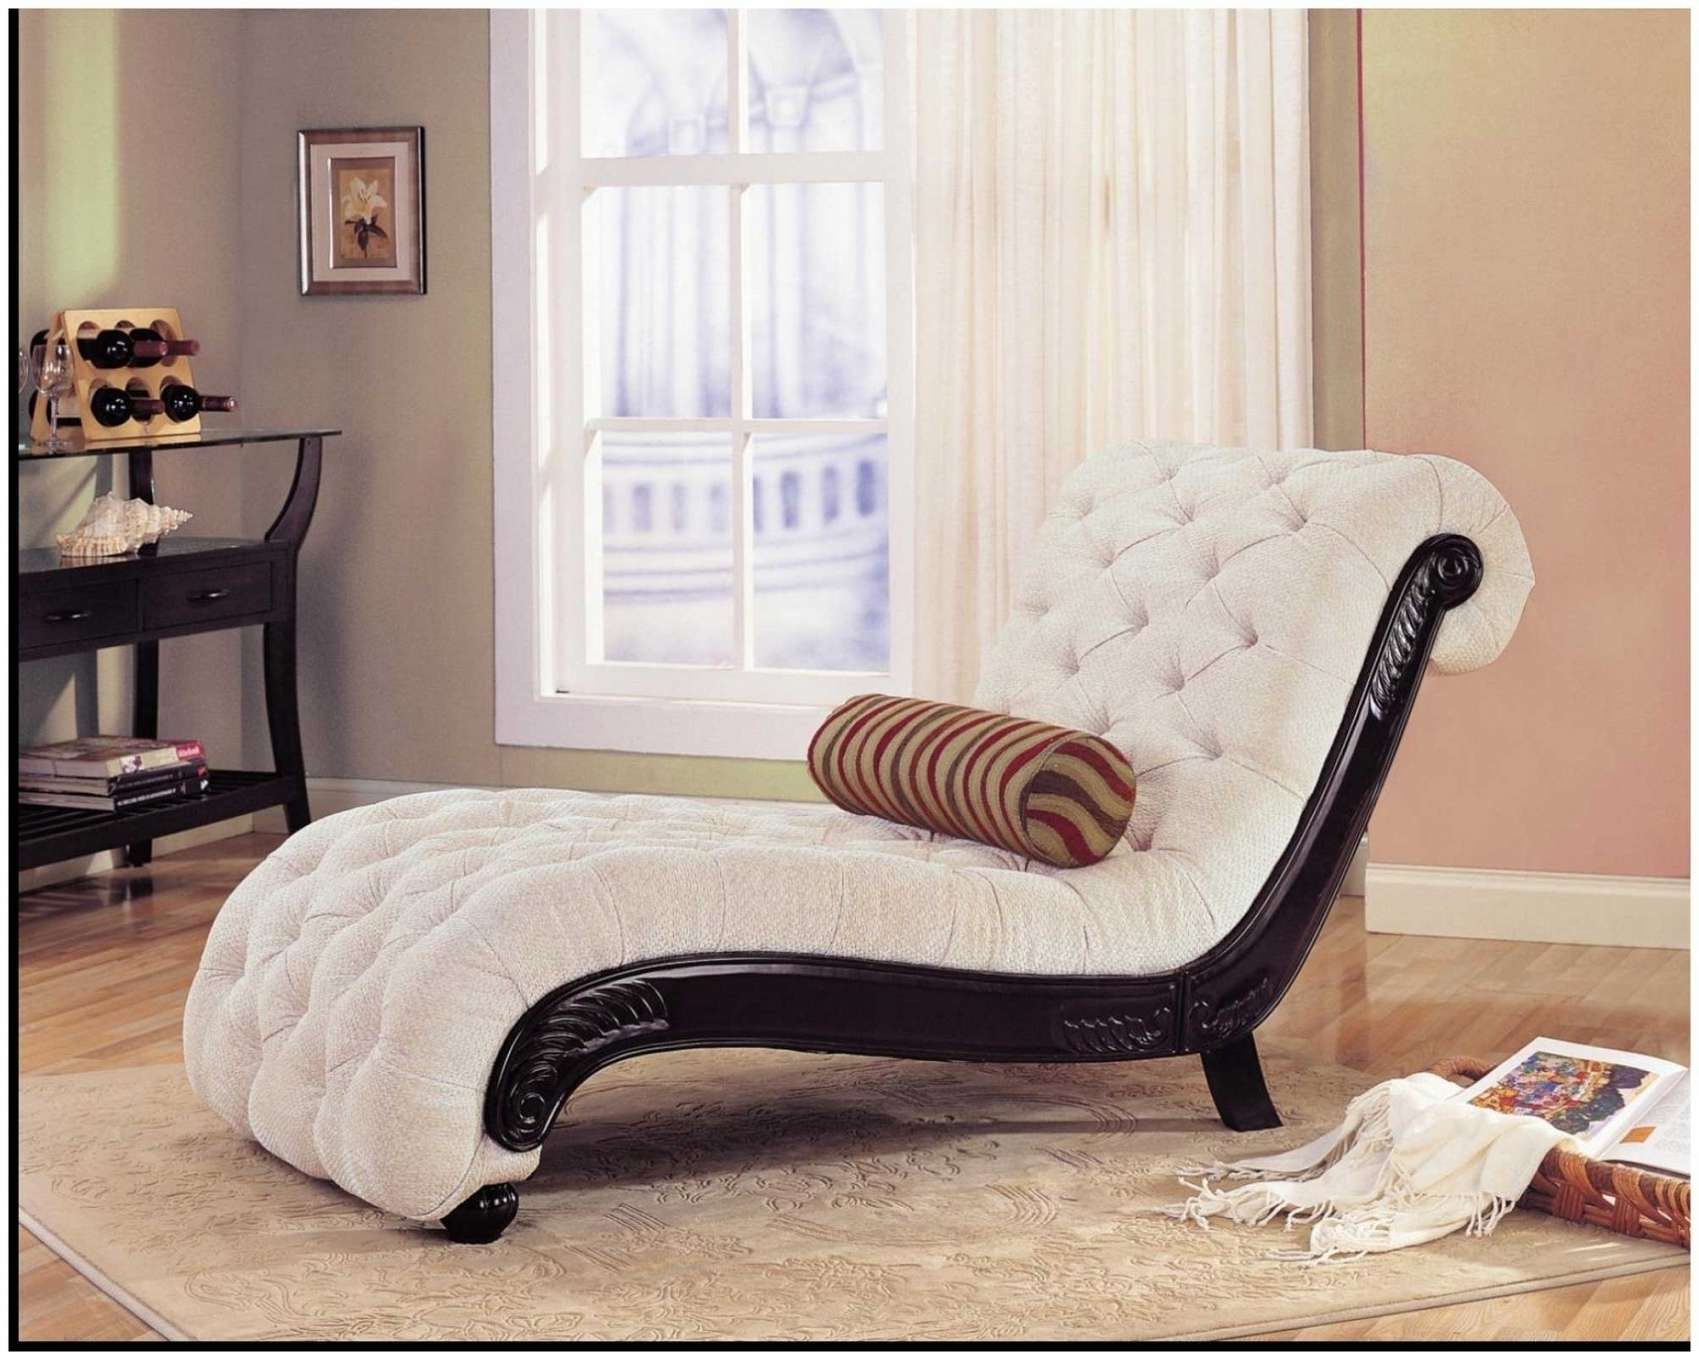 Fullsize Of Lounge Seating For Bedrooms